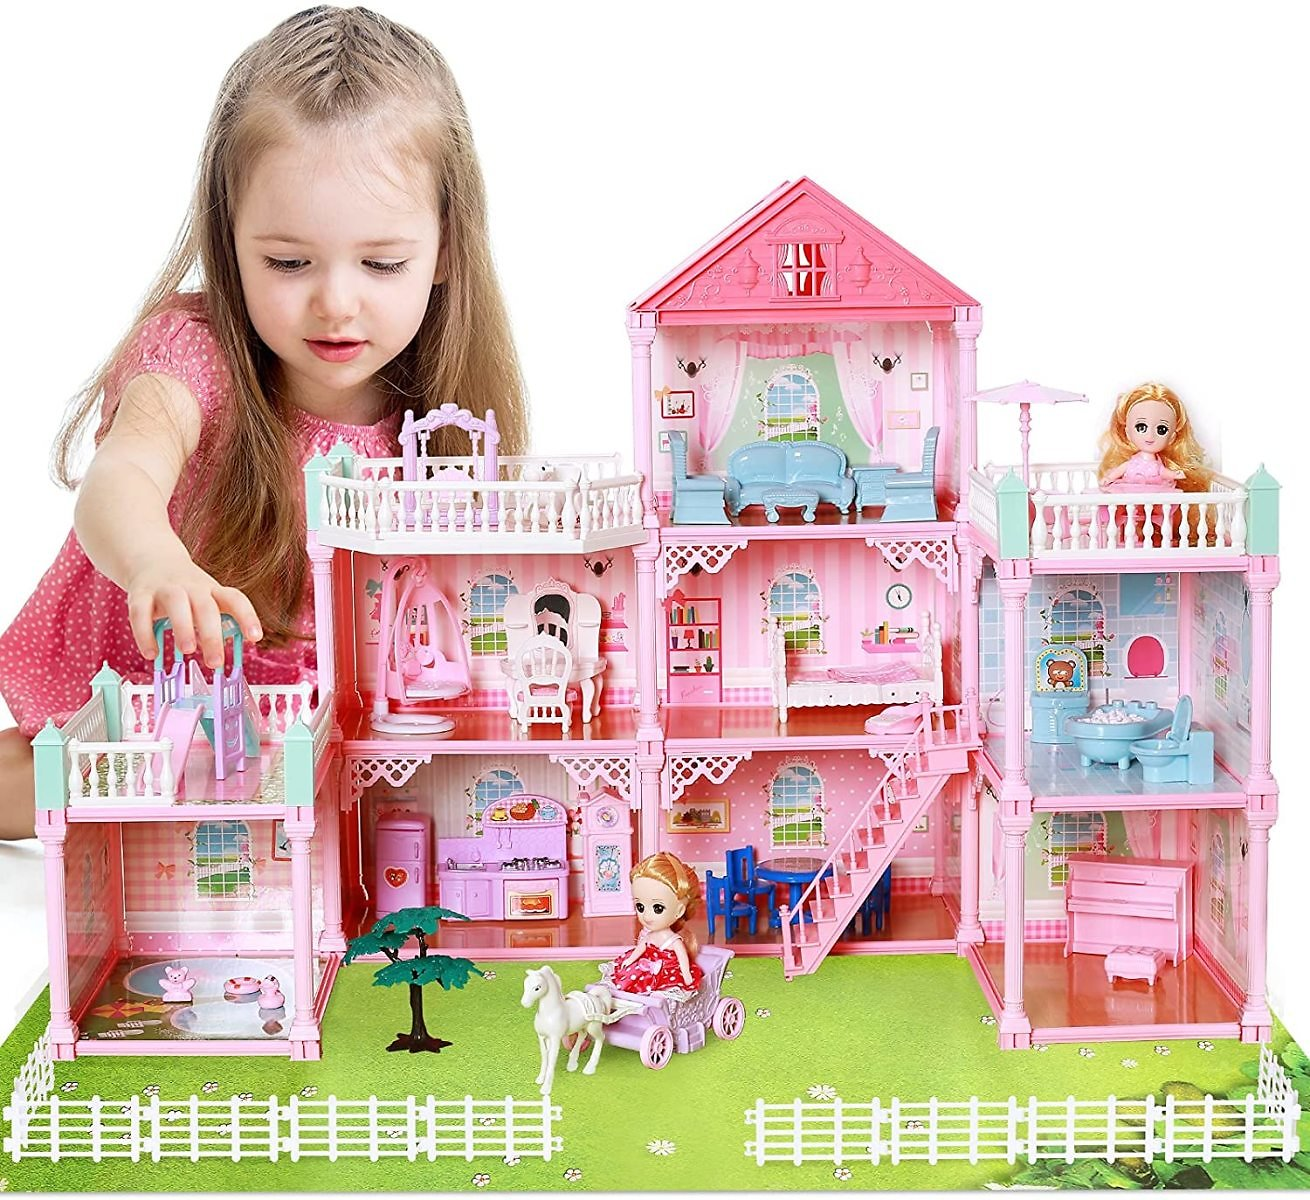 50% Off Pretend Play Toddler Dollhouse Sets with 2 Dolls, Furniture, 8 Rooms and Doll Accessories